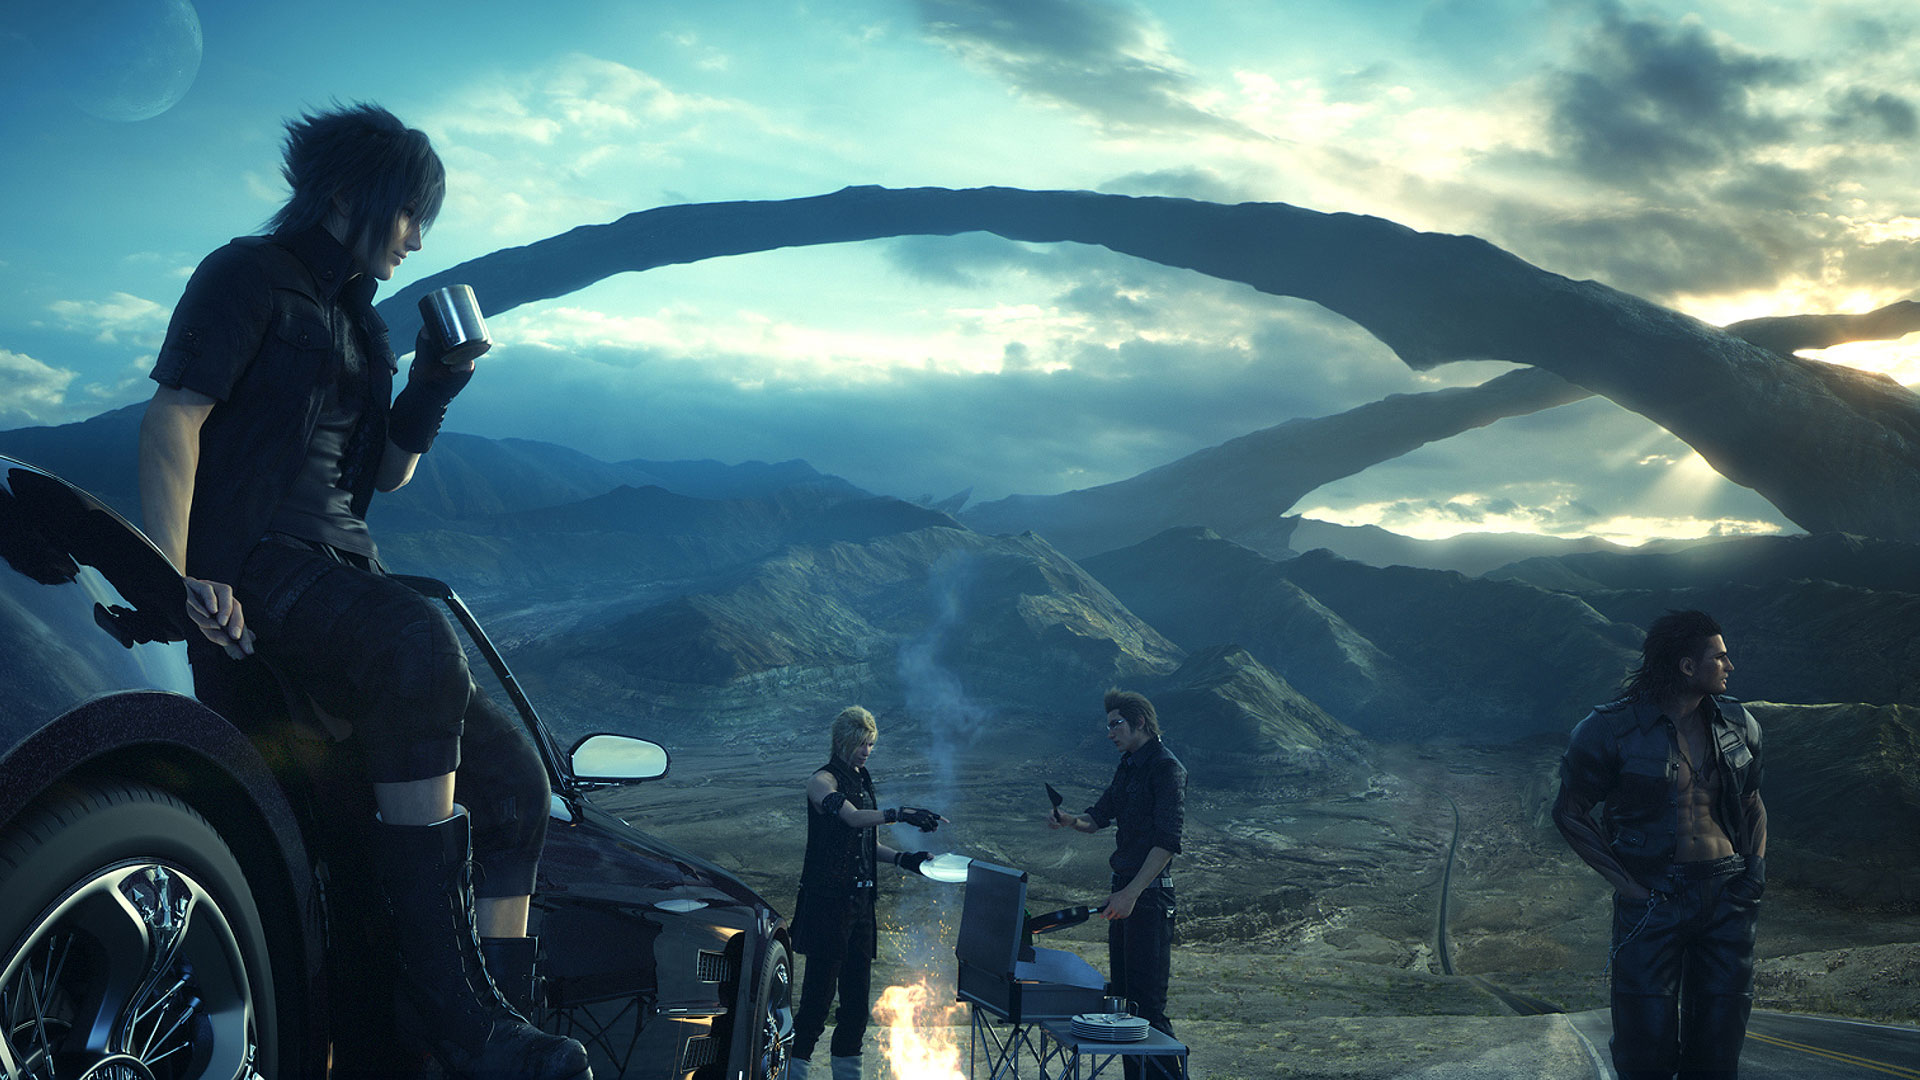 Final Fantasy Xv Wallpapers In Ultra Hd 4k Gameranx